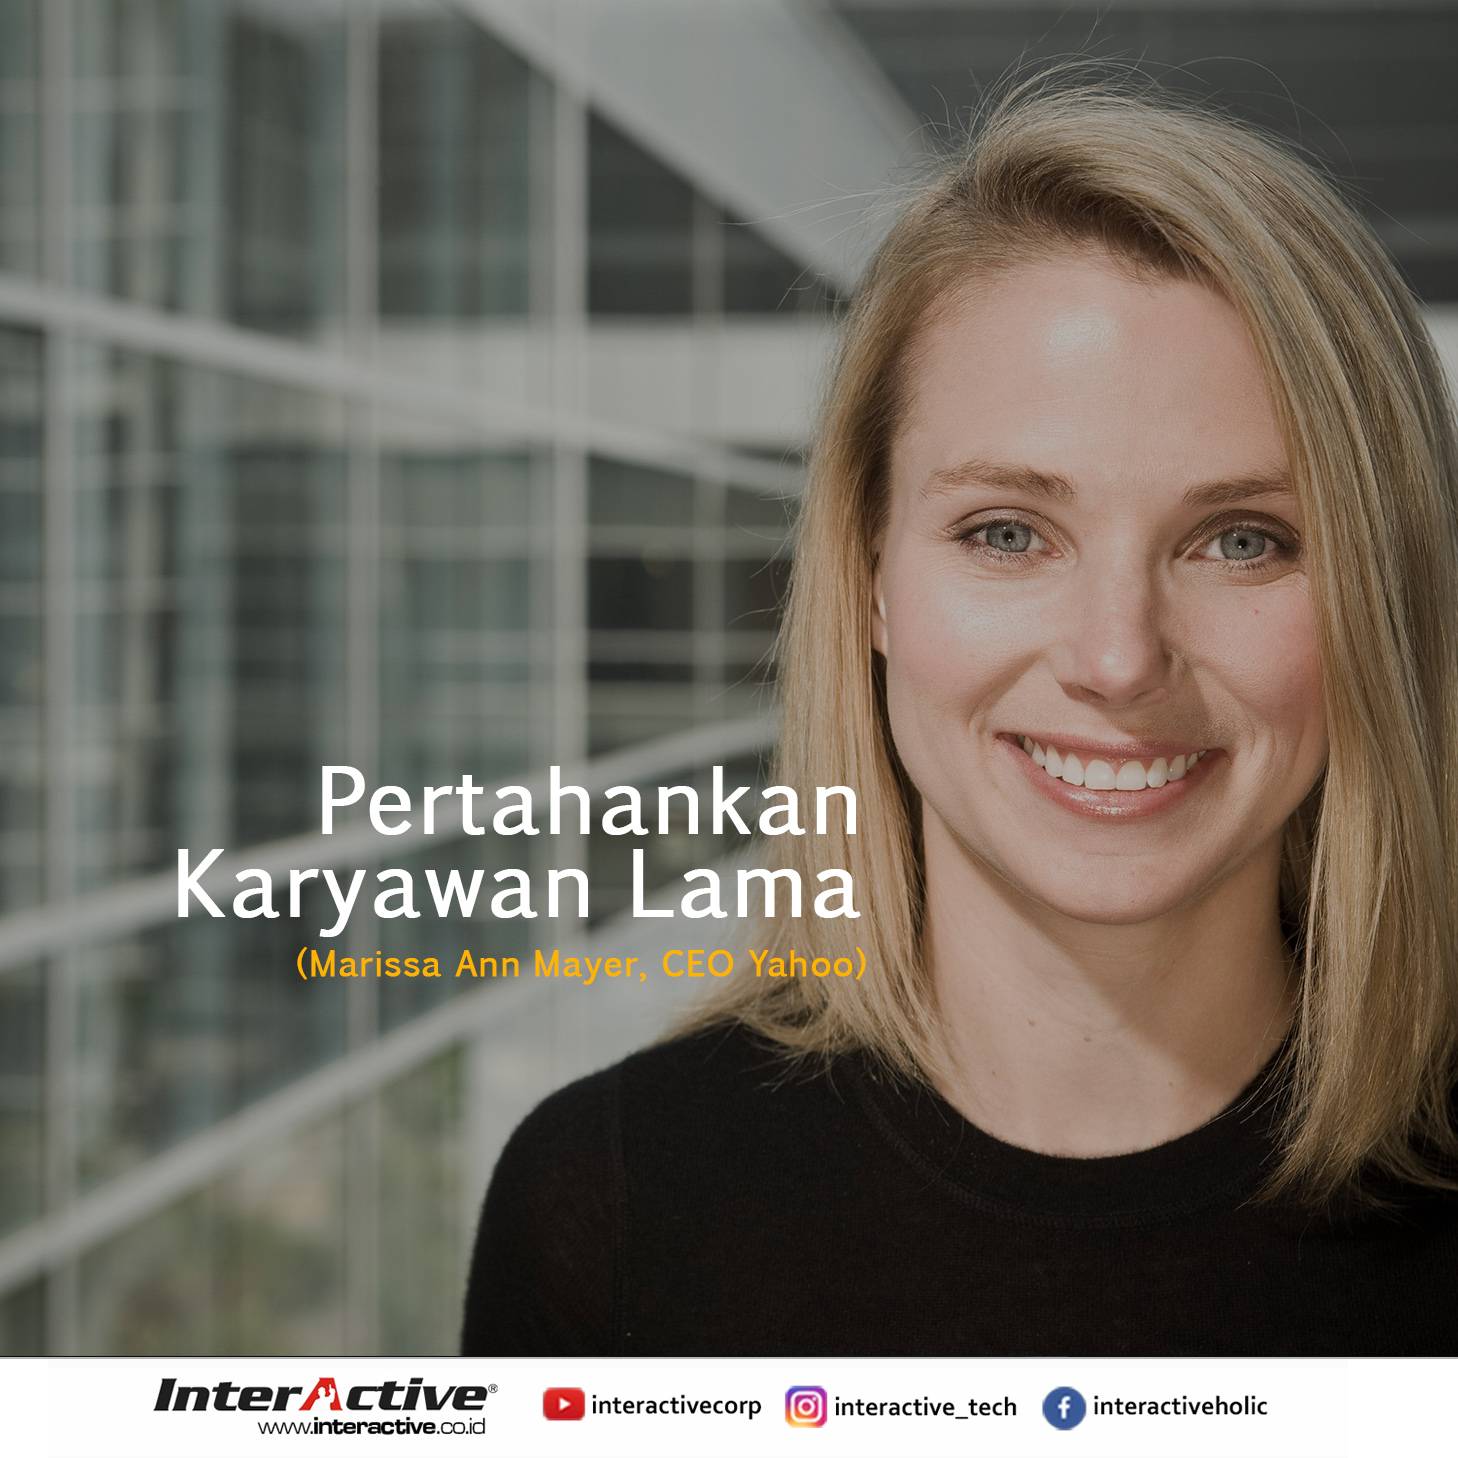 Quotes Marissa Mayer